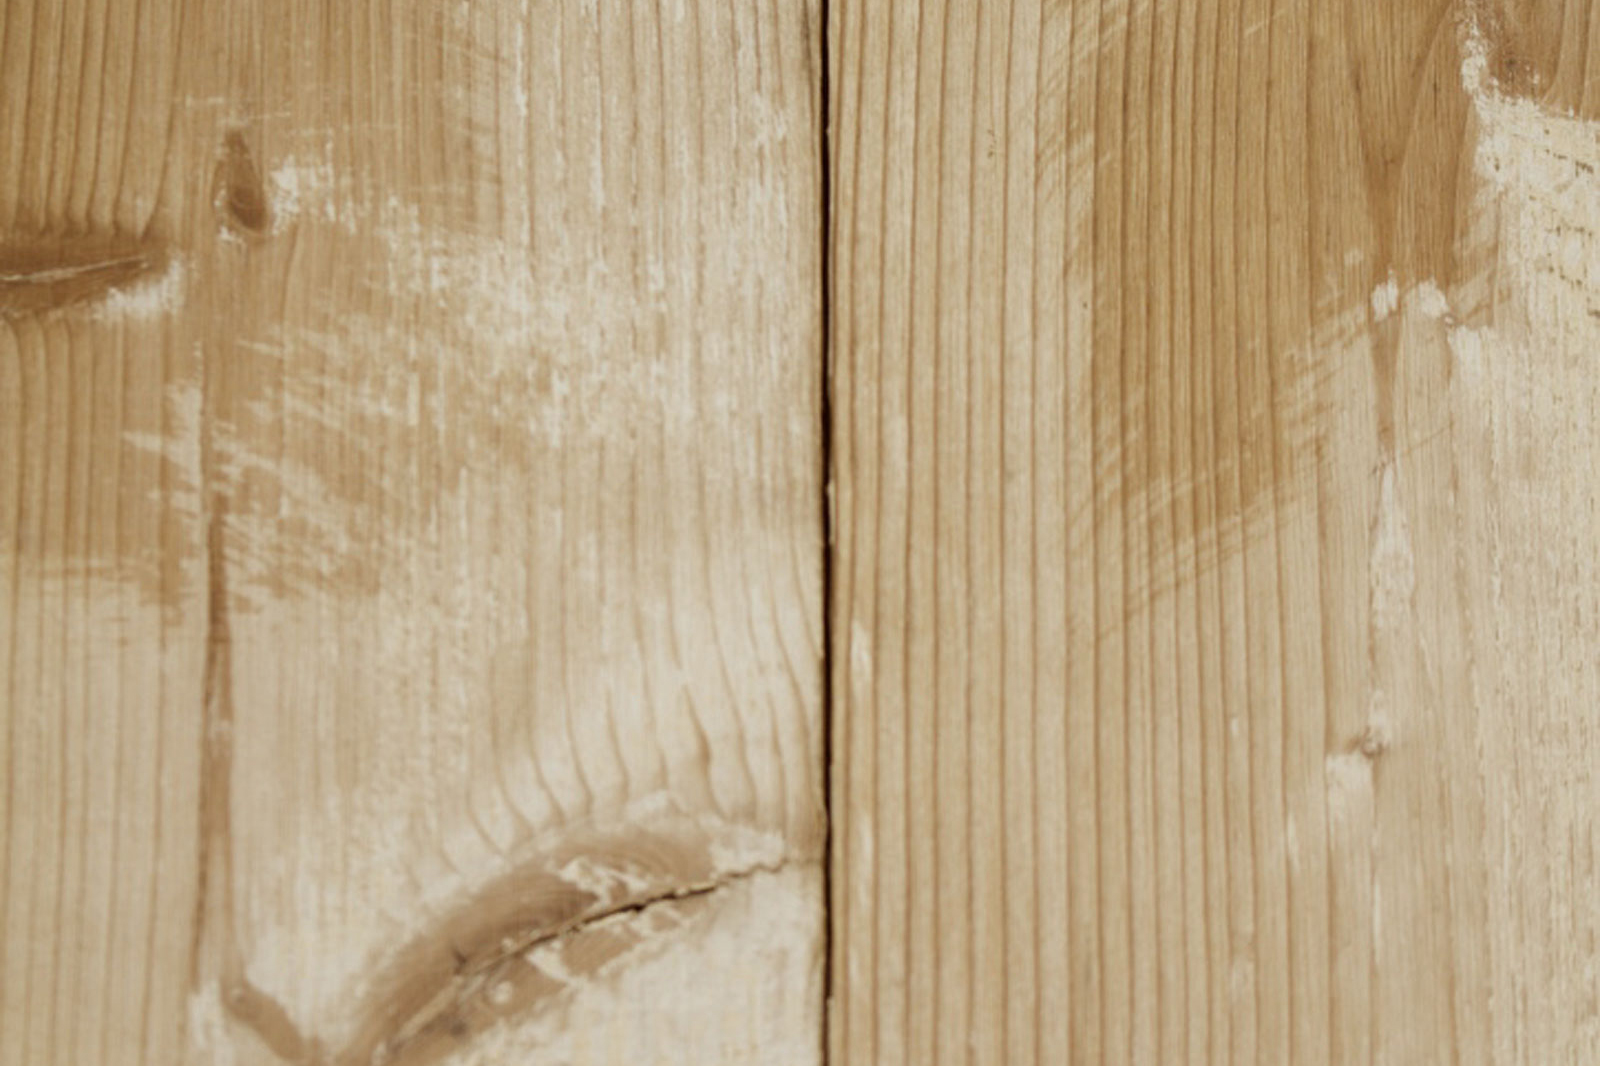 Close up of knot on cladding